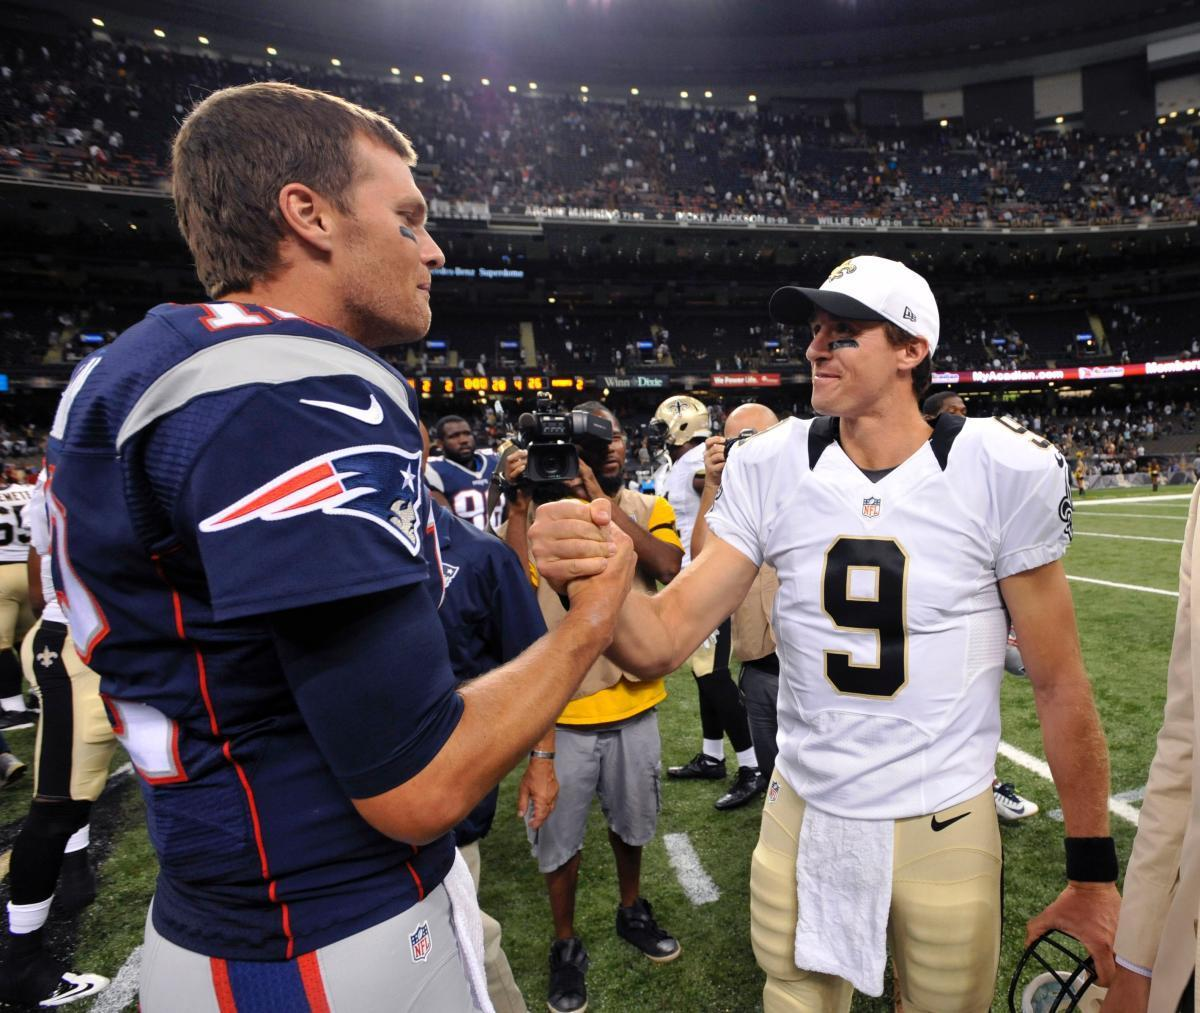 NFL Notes: Tom Brady's Buccaneers aren't even the NFC South's team to watch